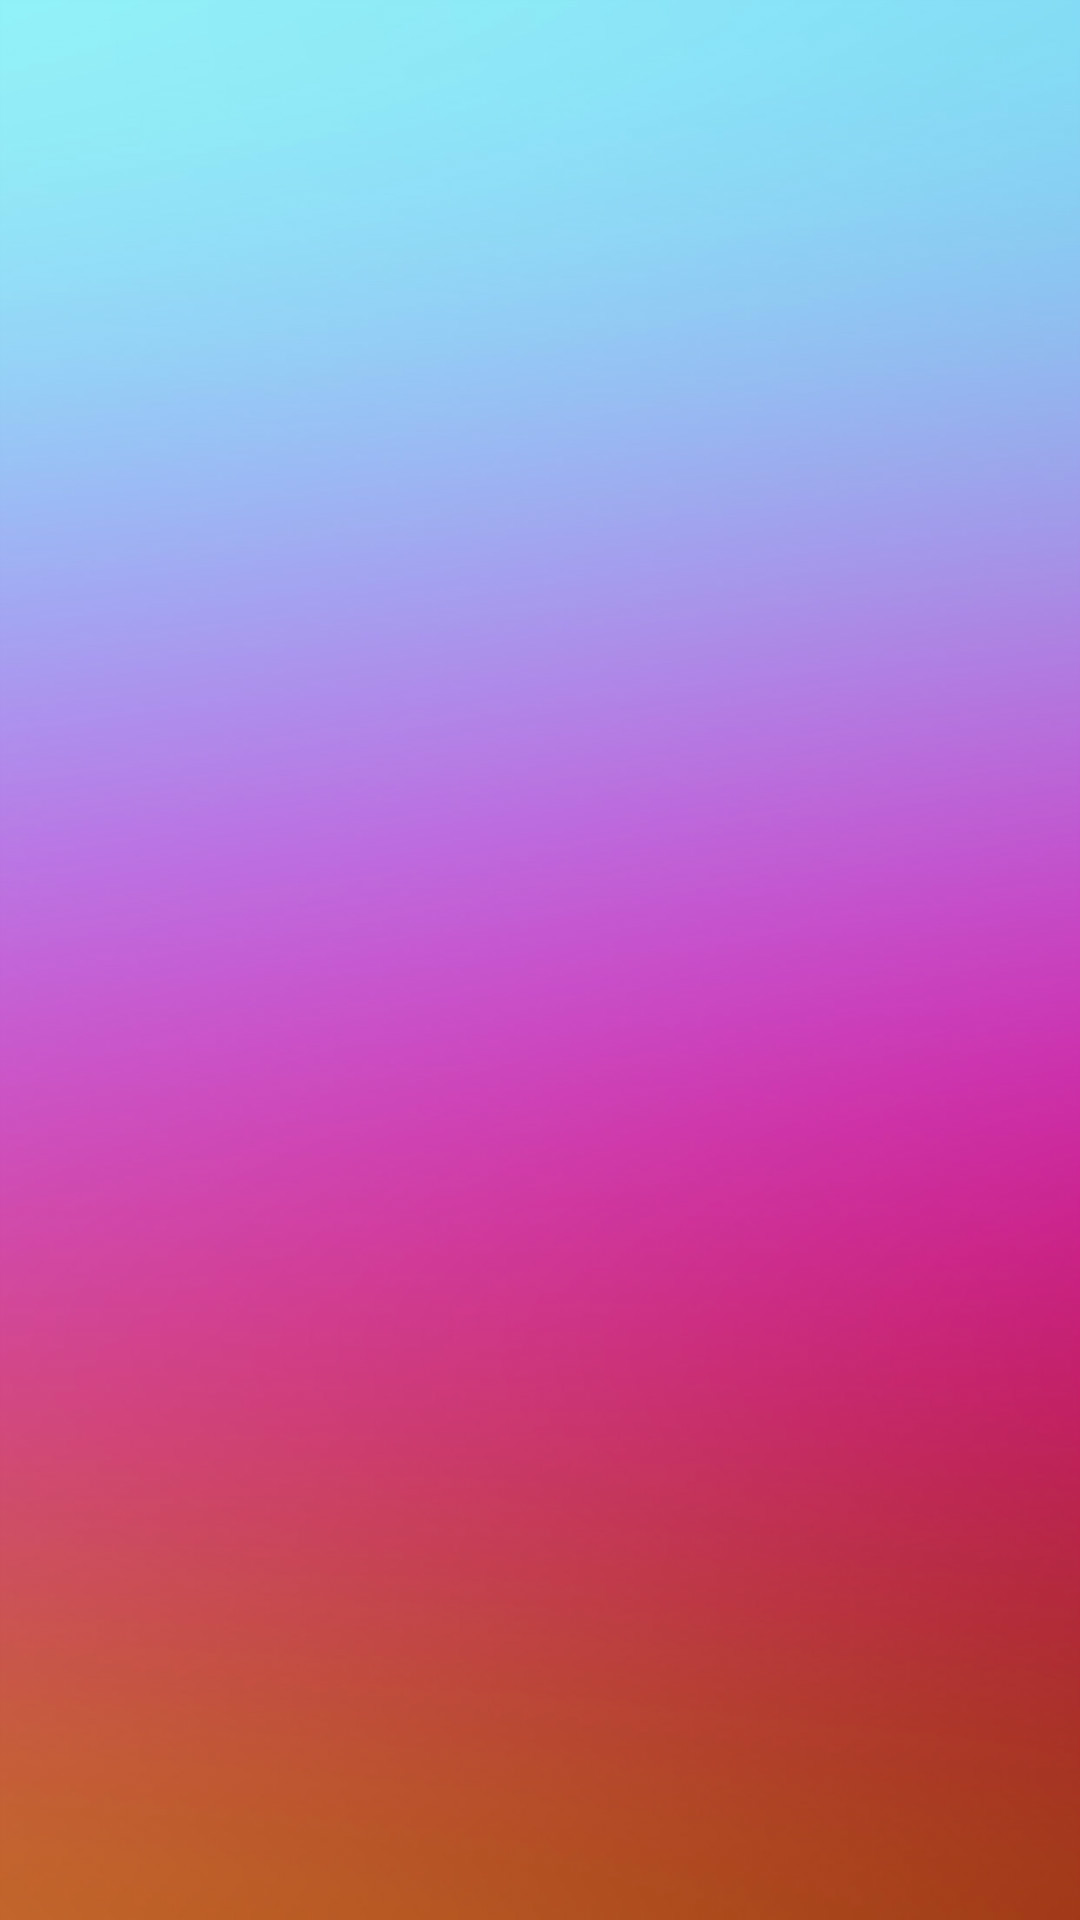 1080x1920 Blue And Red Color Gradation Blur iPhone 6 wallpaper